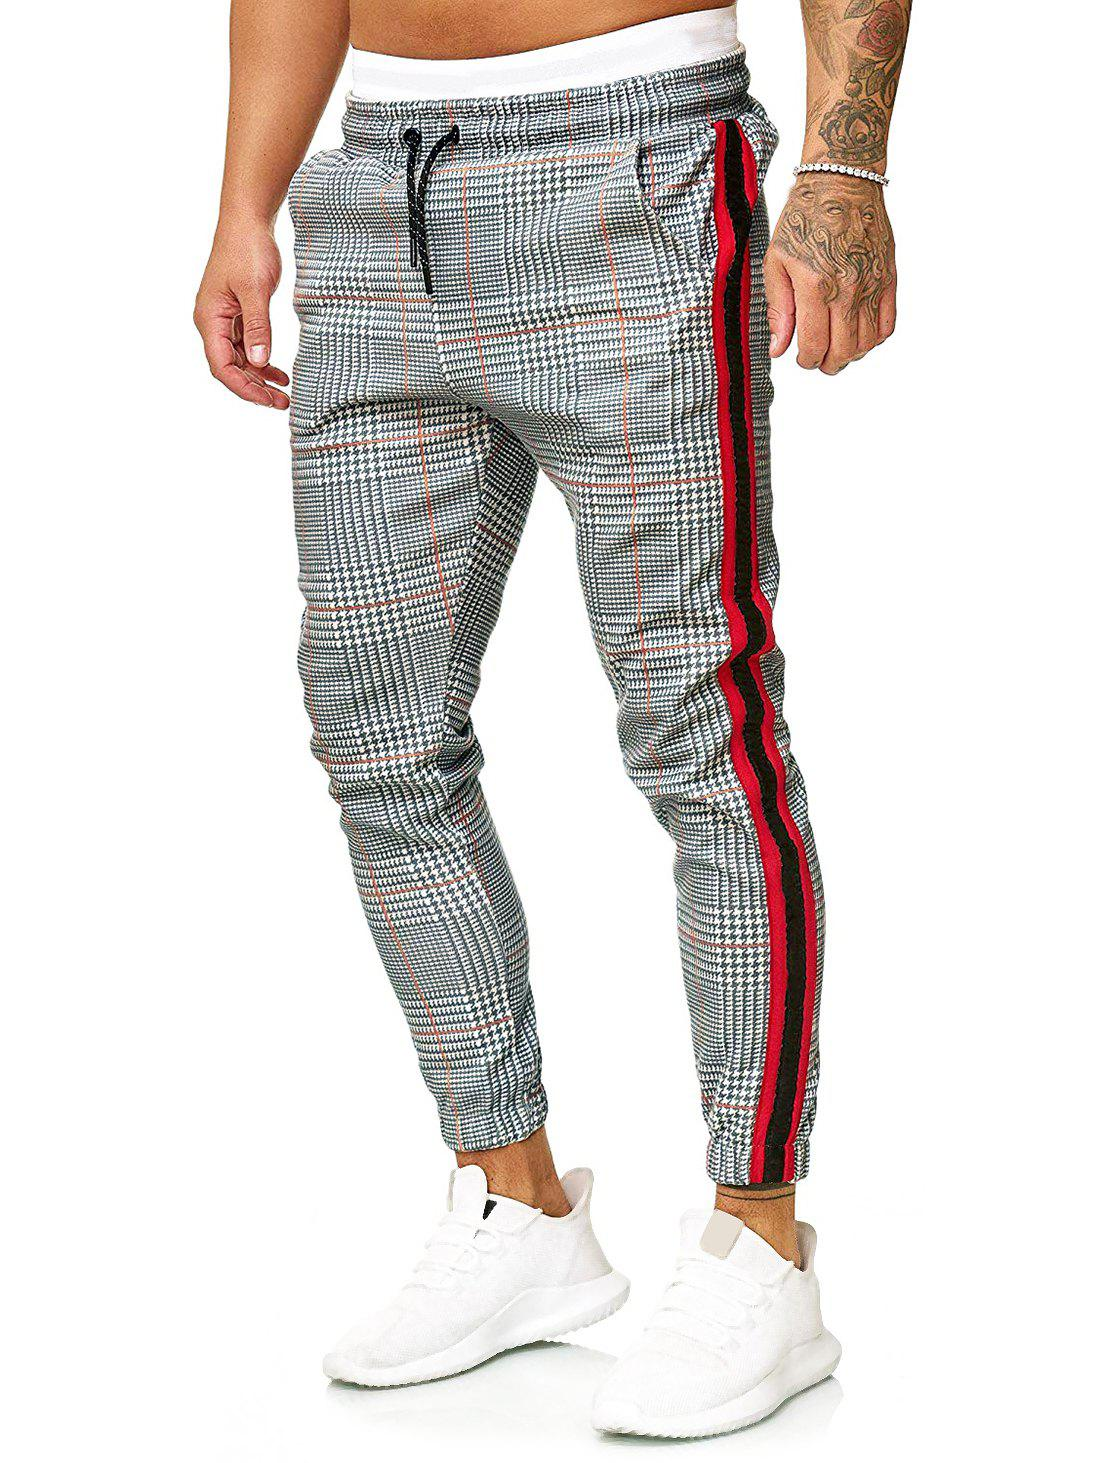 Contrast Striped Spliced Pattern Graphic Print Casual Jogger Pants - LIGHT GRAY 2XL